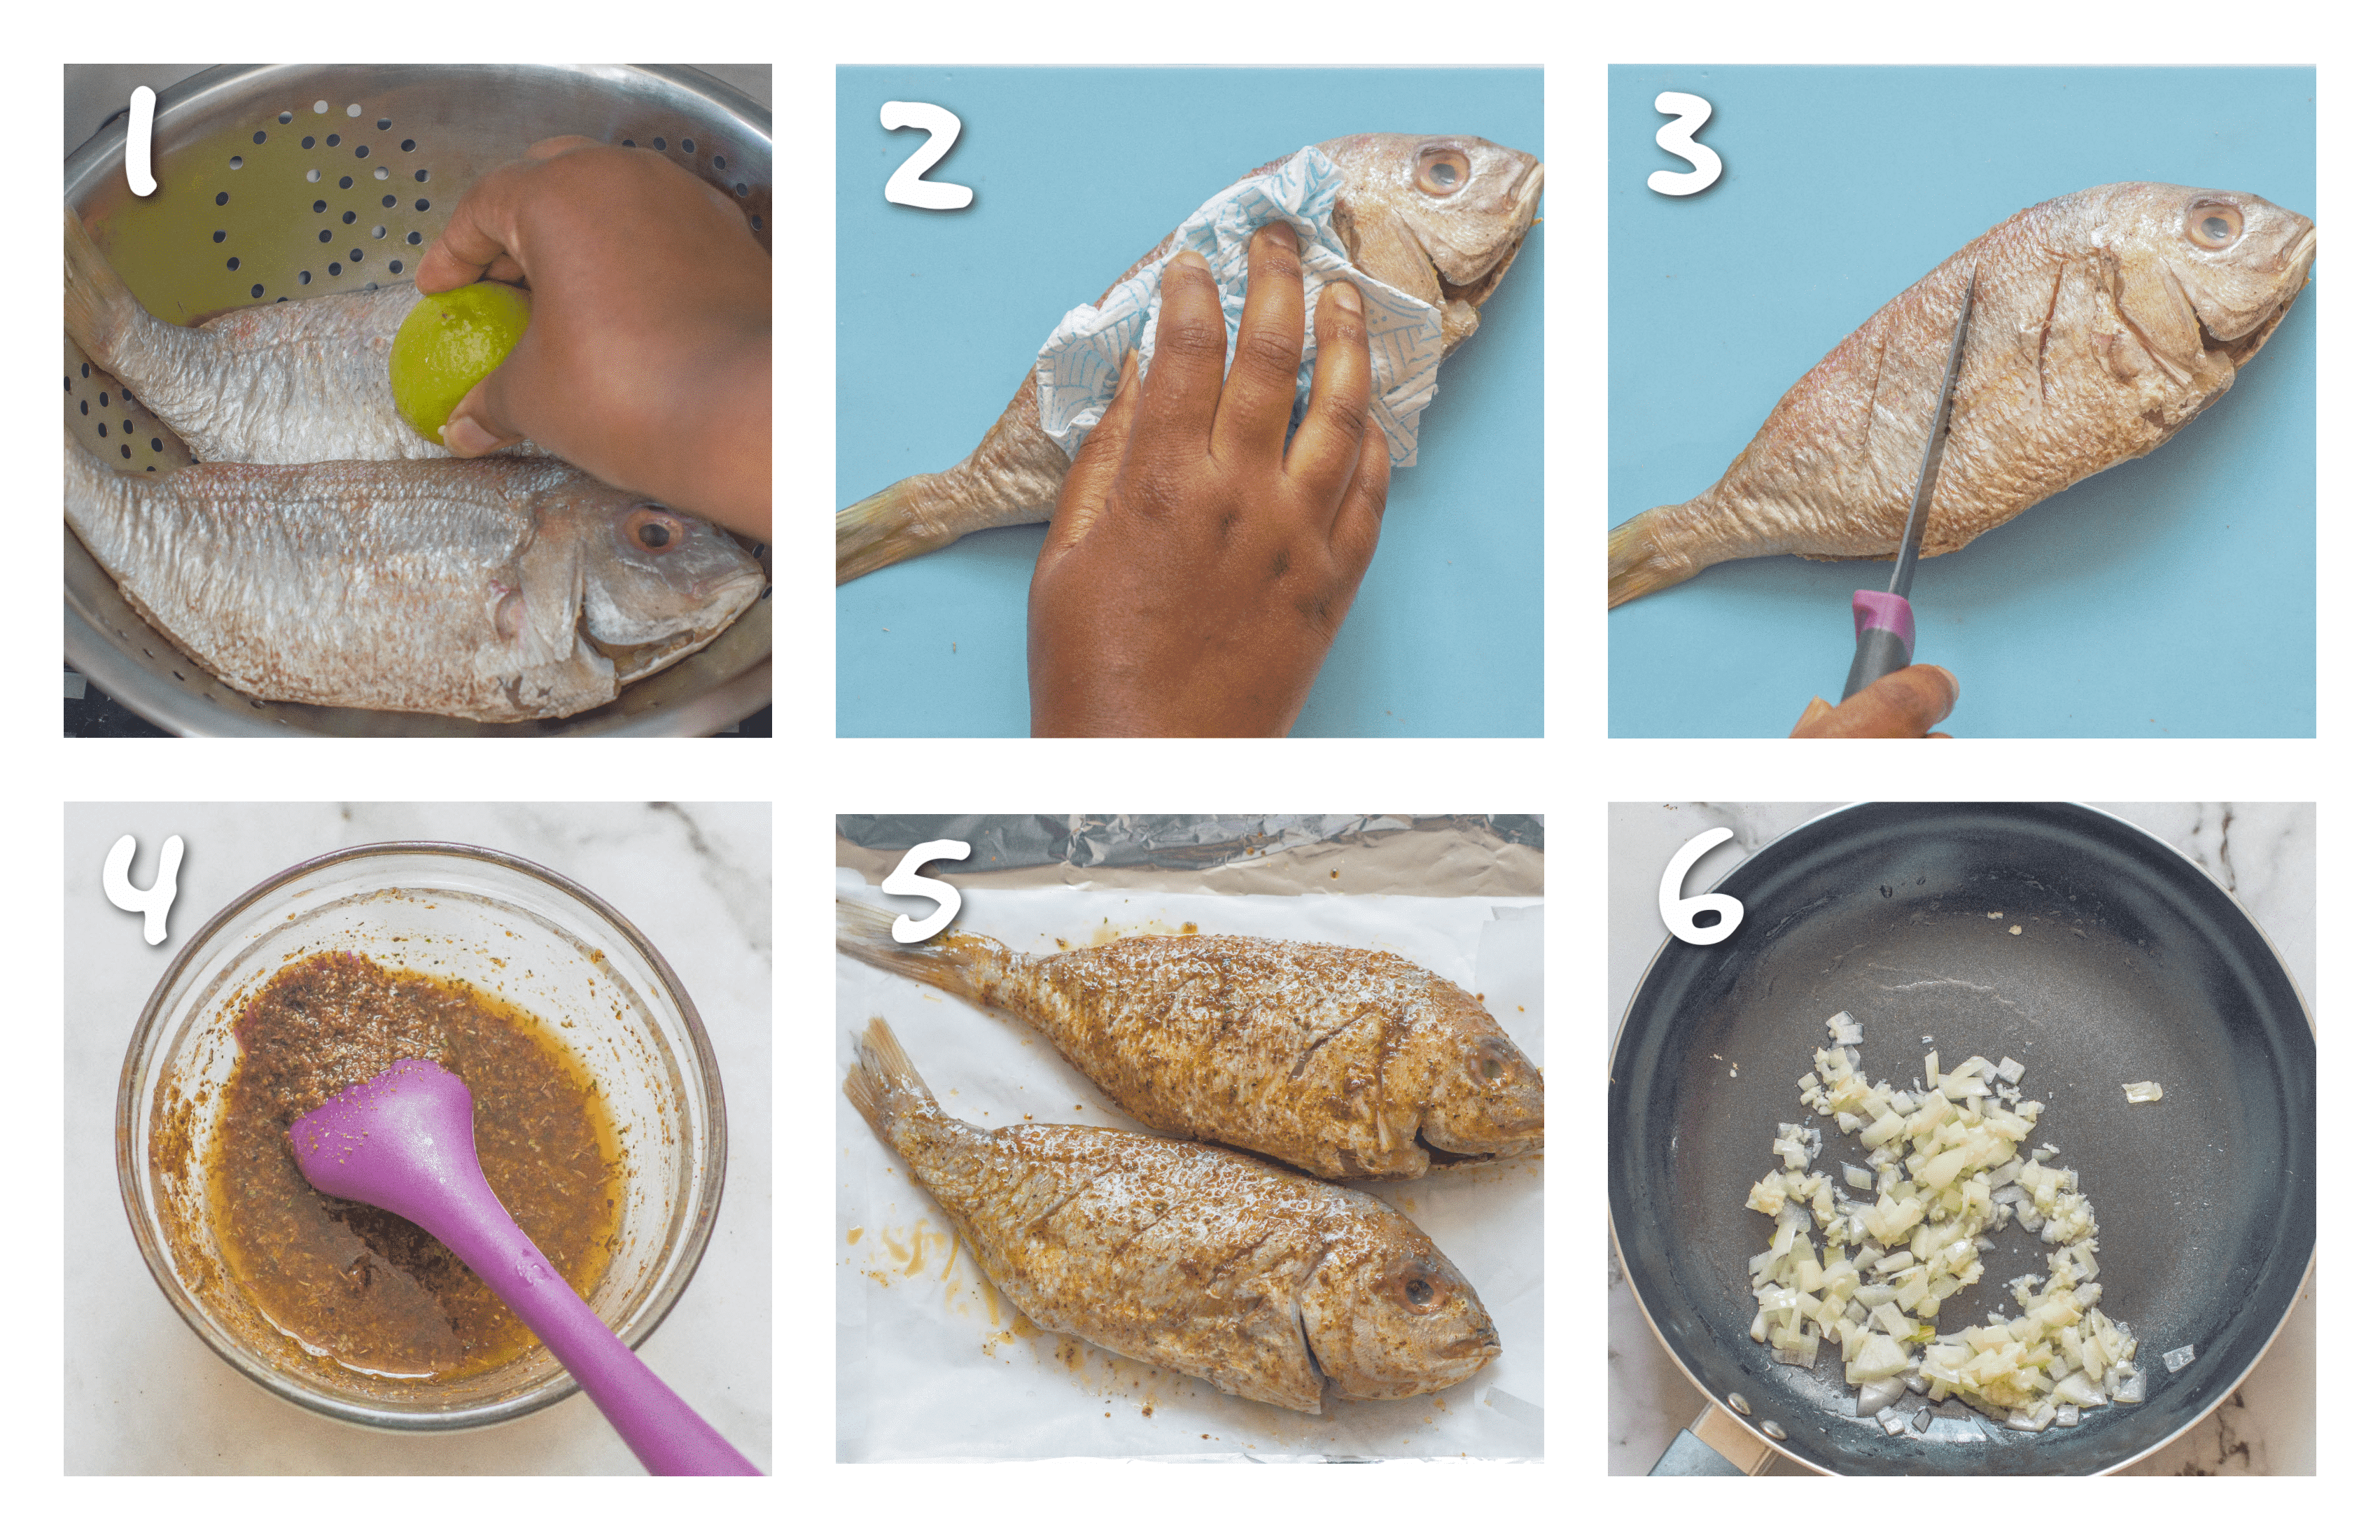 steps1-6 cleaning the fish and seasoning it